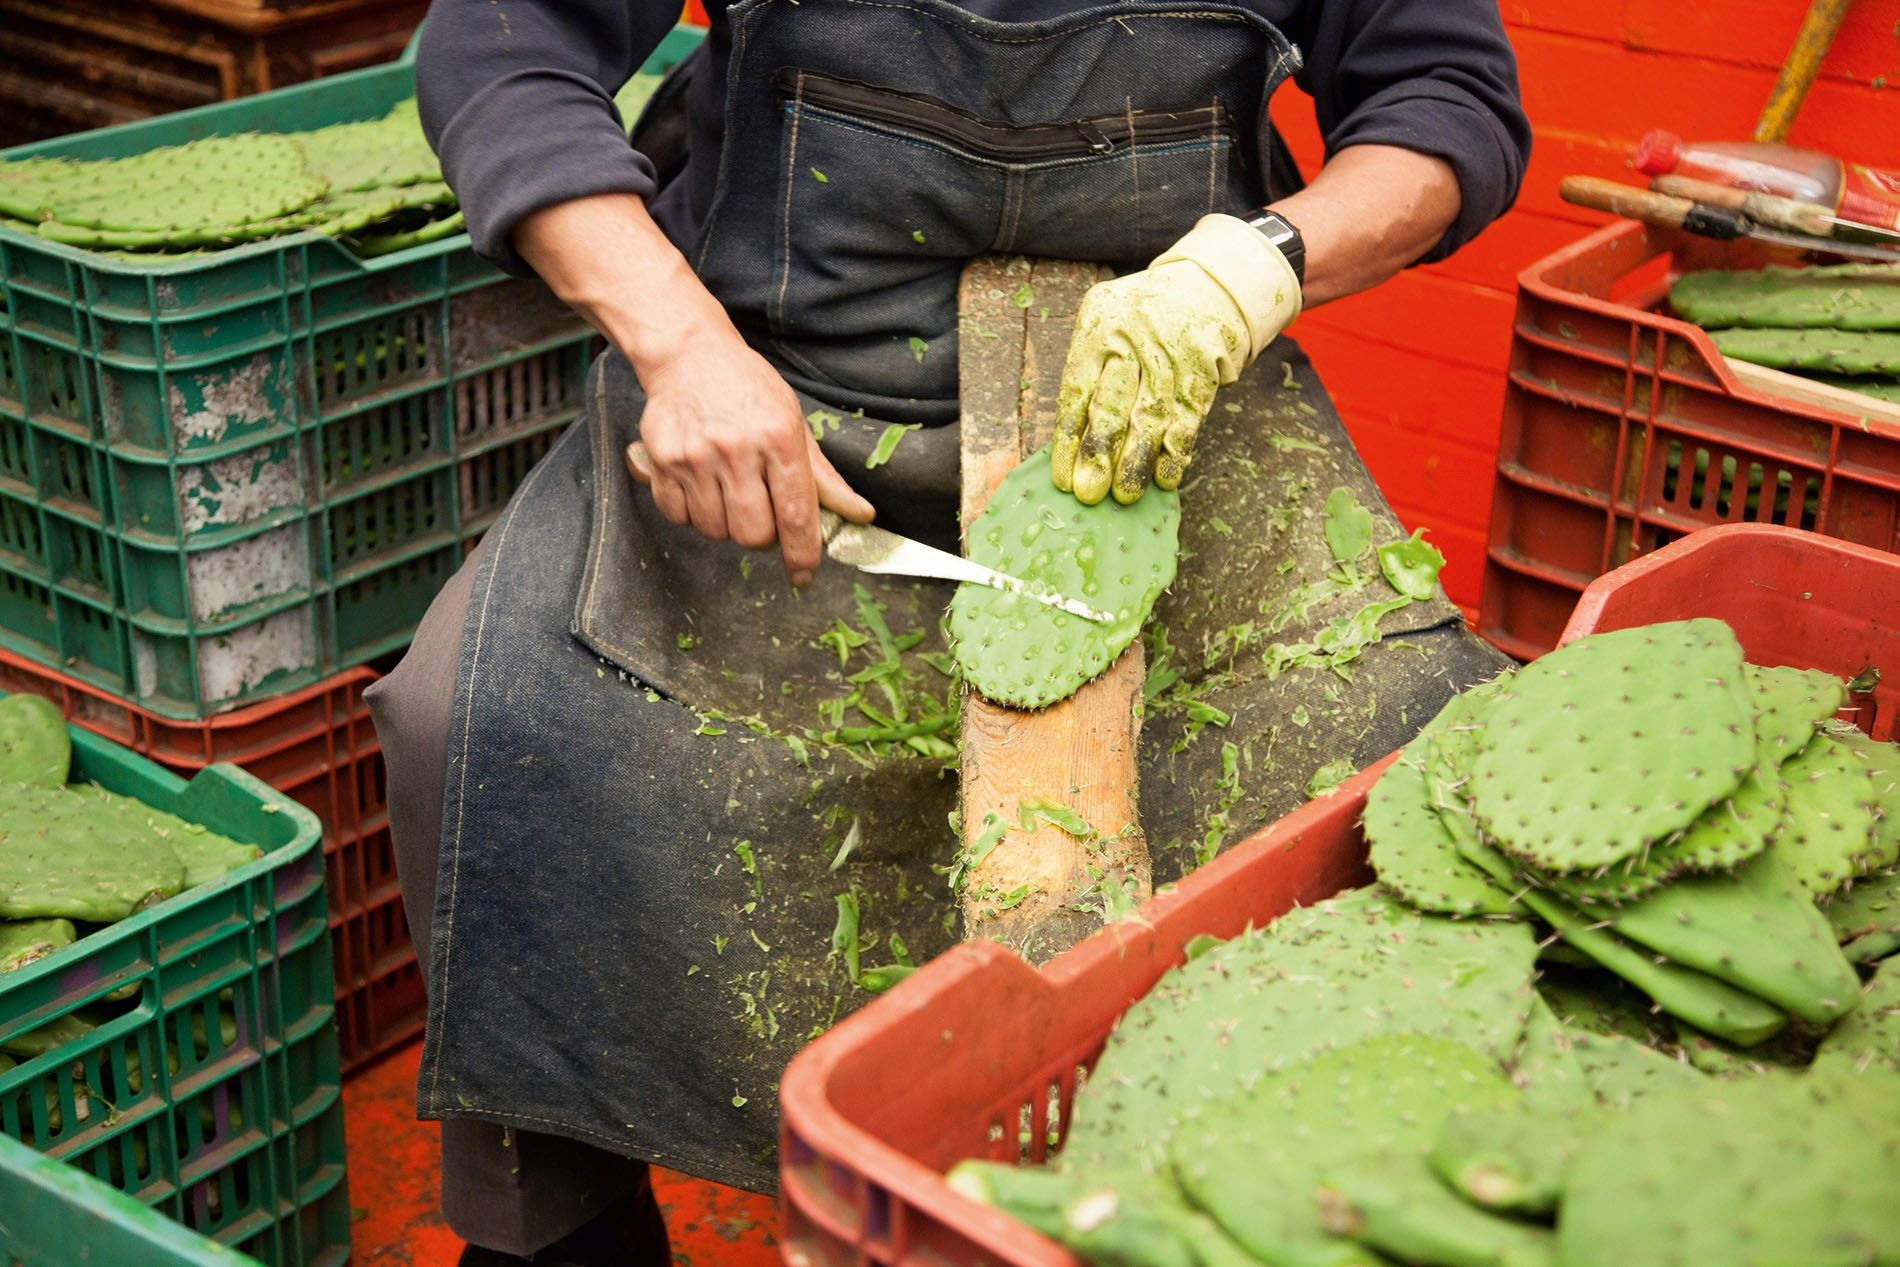 Nopales being prepared for sale in Mexico City